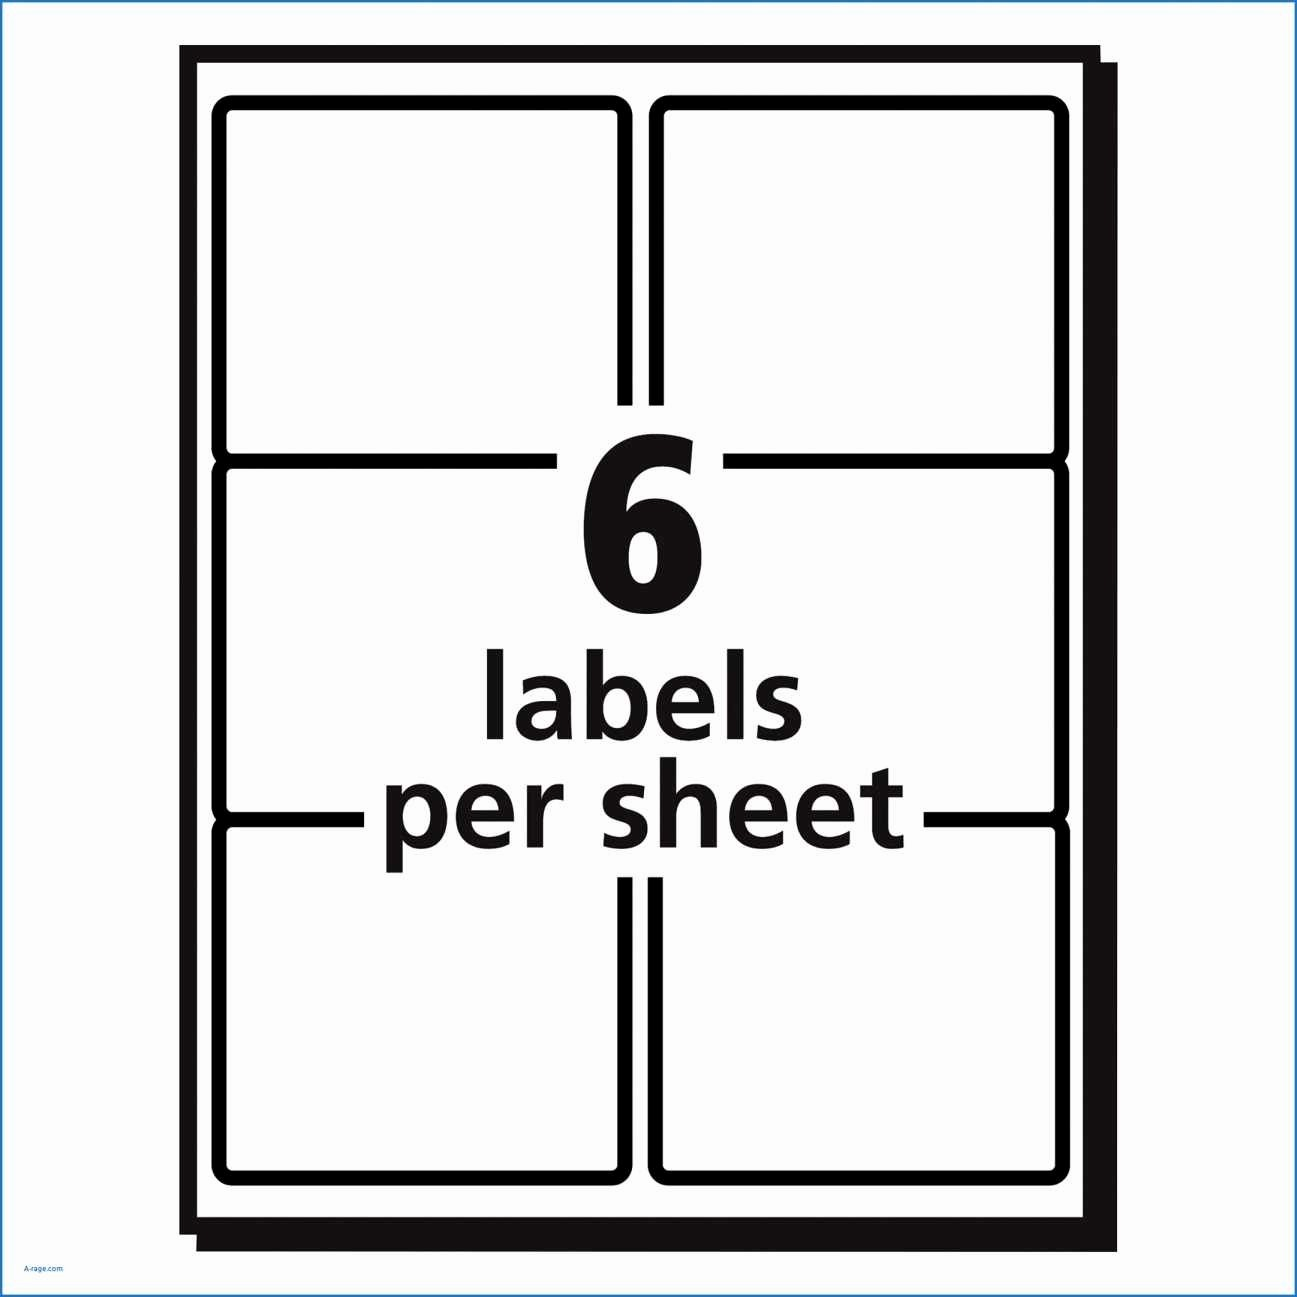 10 Per Sheet Label Template Luxury 10 Labels Per Sheet Template Sample Worksheets Oval Avery